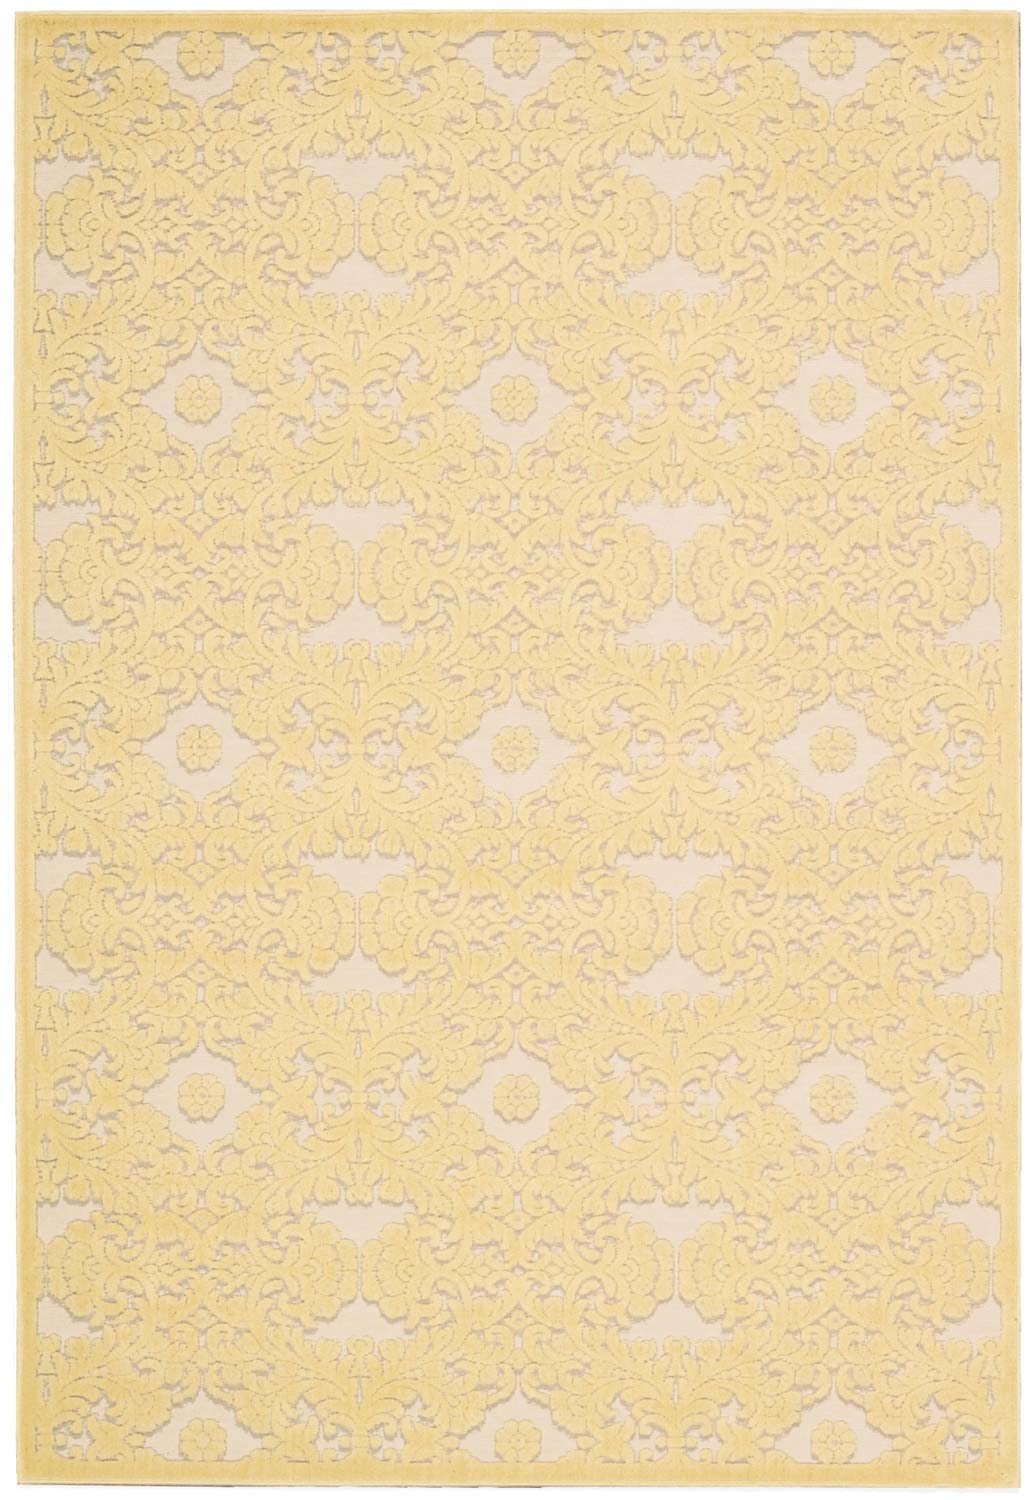 Nourison Graphic Illusions GIL07 Yellow Area Rug